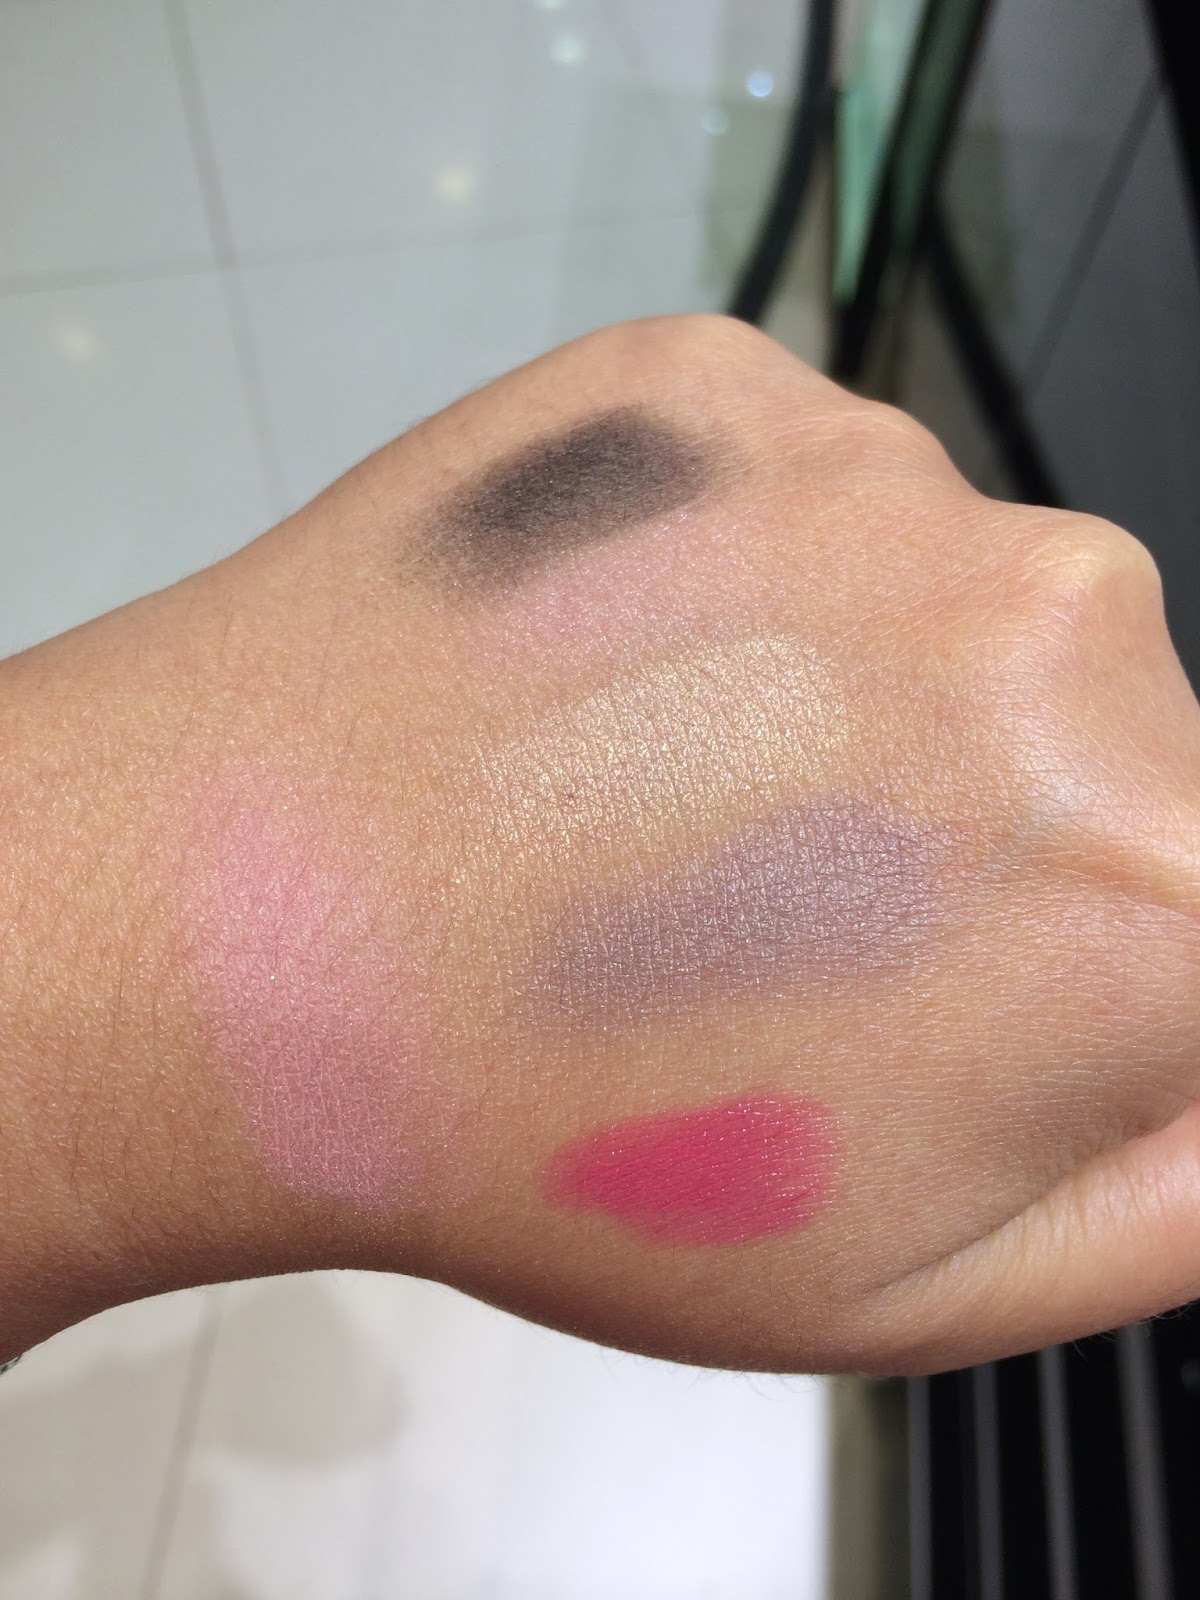 Miaka 39 s life and loves chanel quadra eye shadow in jardin zen for Jardin zen